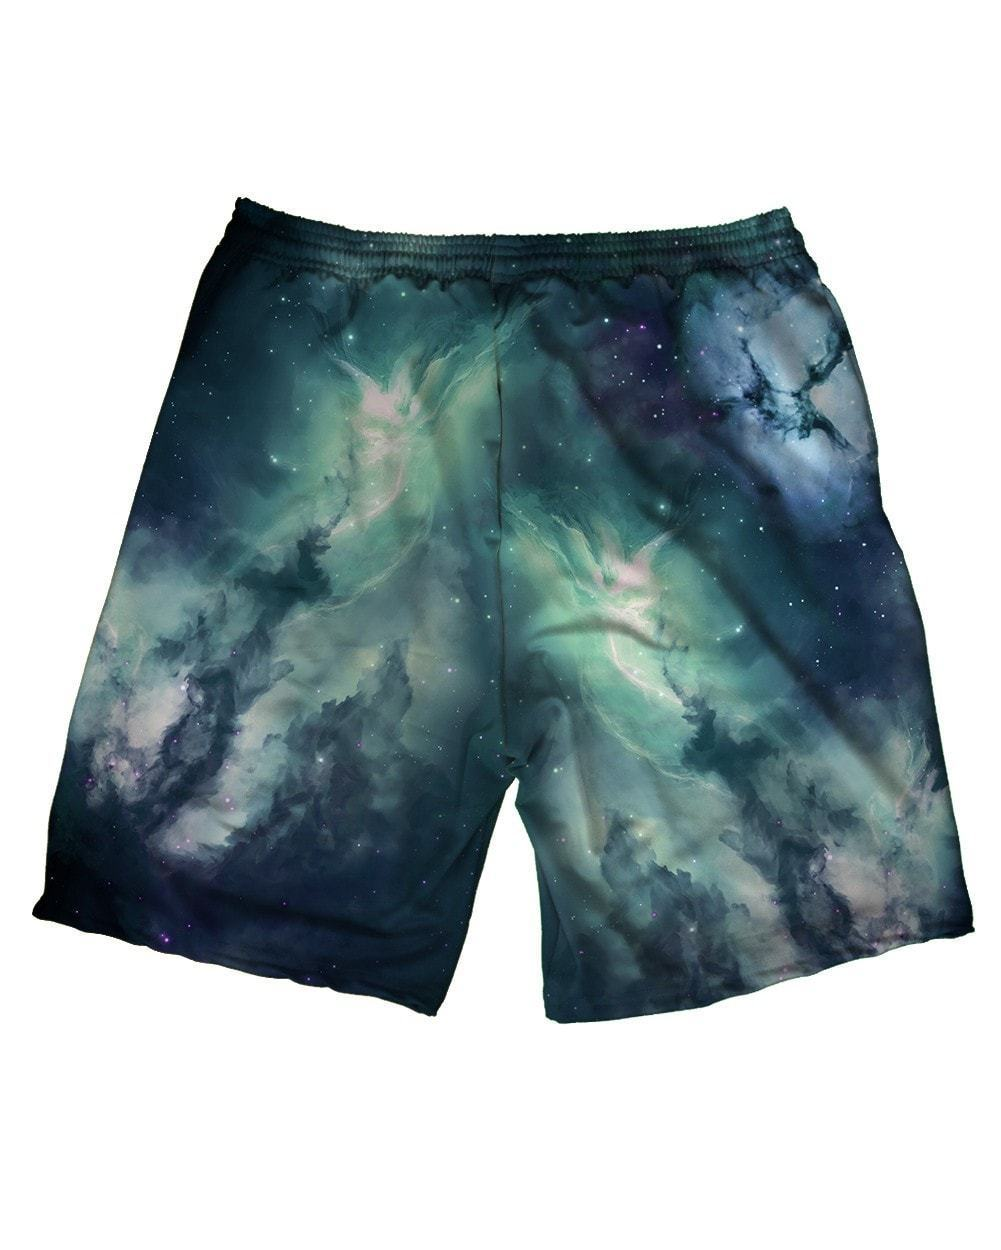 Cold Galaxy Men's All Over Print Shorts with Premium Graphic Print